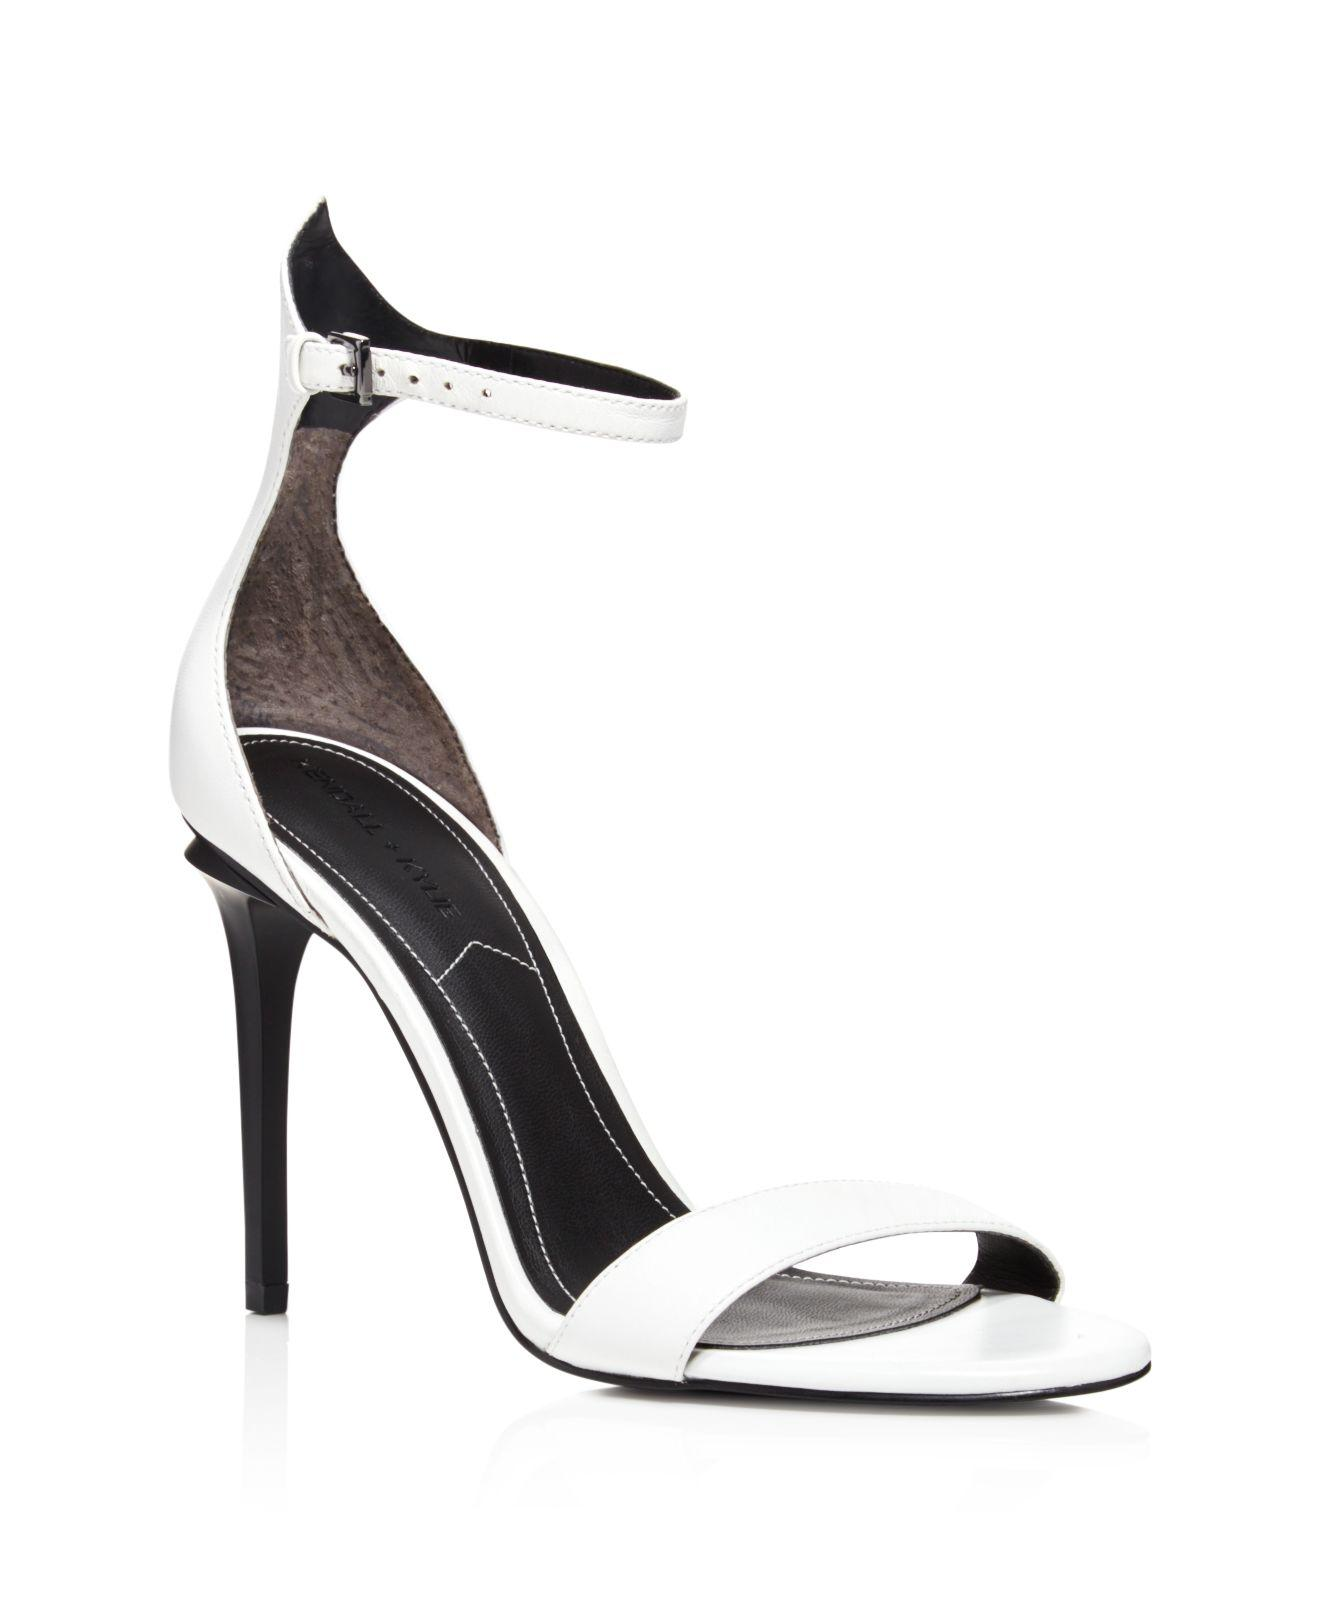 34dcc7c996c Lyst - Kendall + Kylie Elin Ankle Strap High Heel Sandals in White